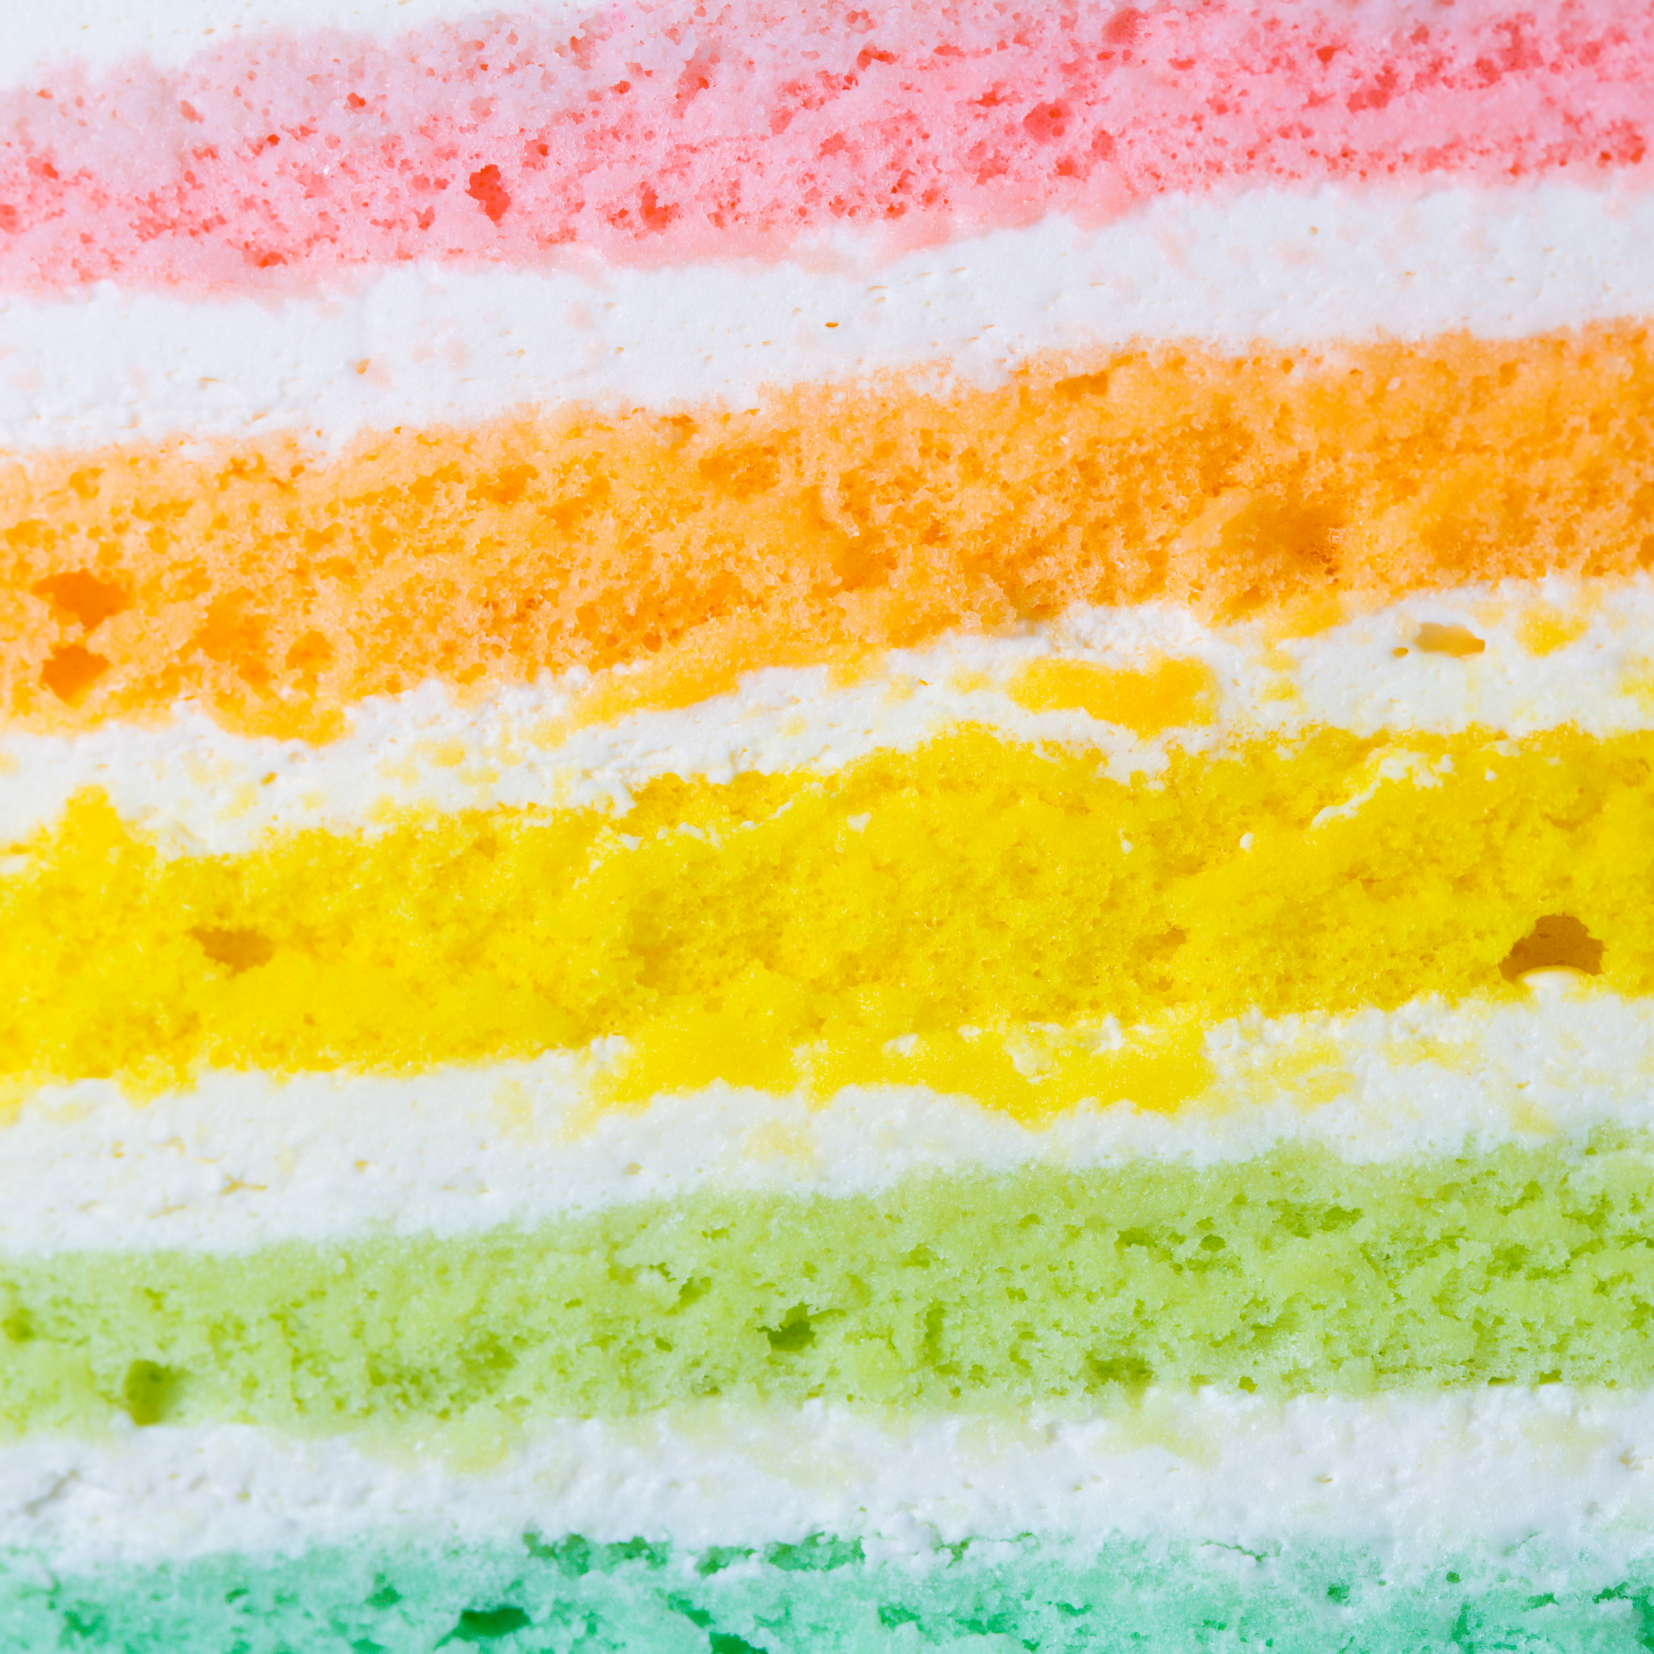 Rainbow cake slice depicting Disordered Eating